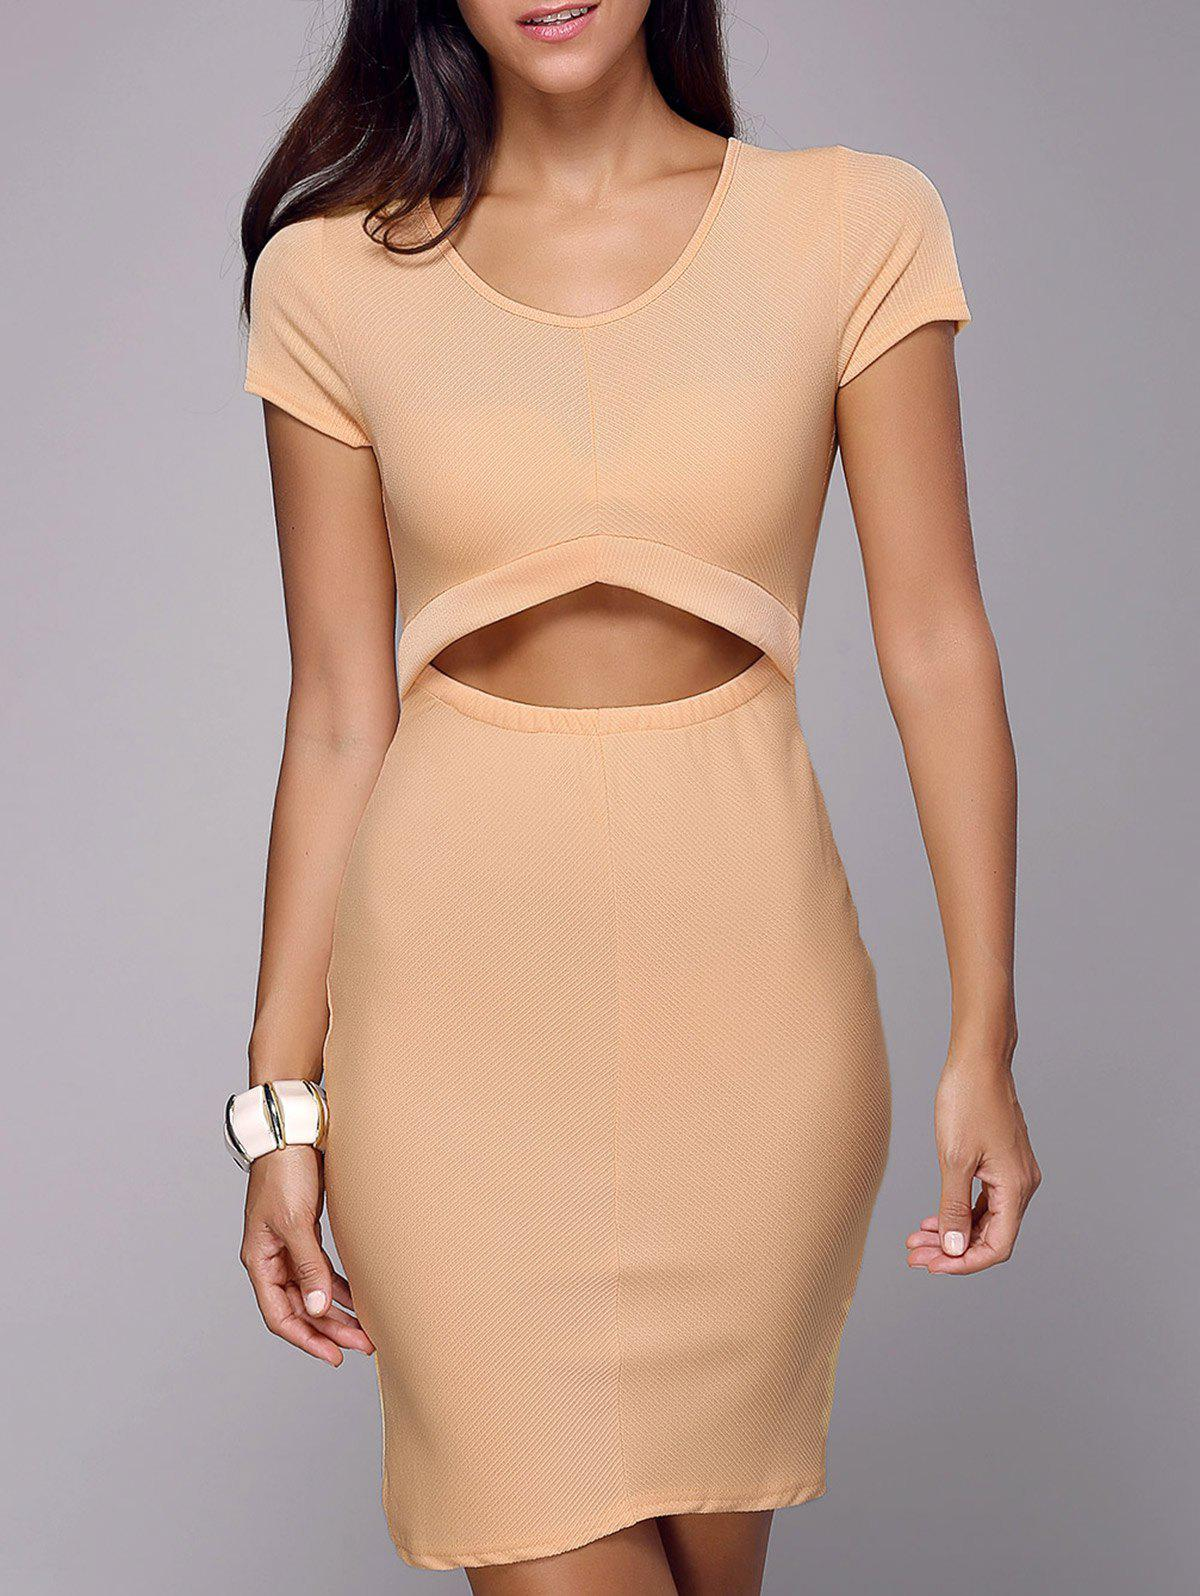 Sheath Knee Length Cutout Dress - LIGHT KHAKI XL